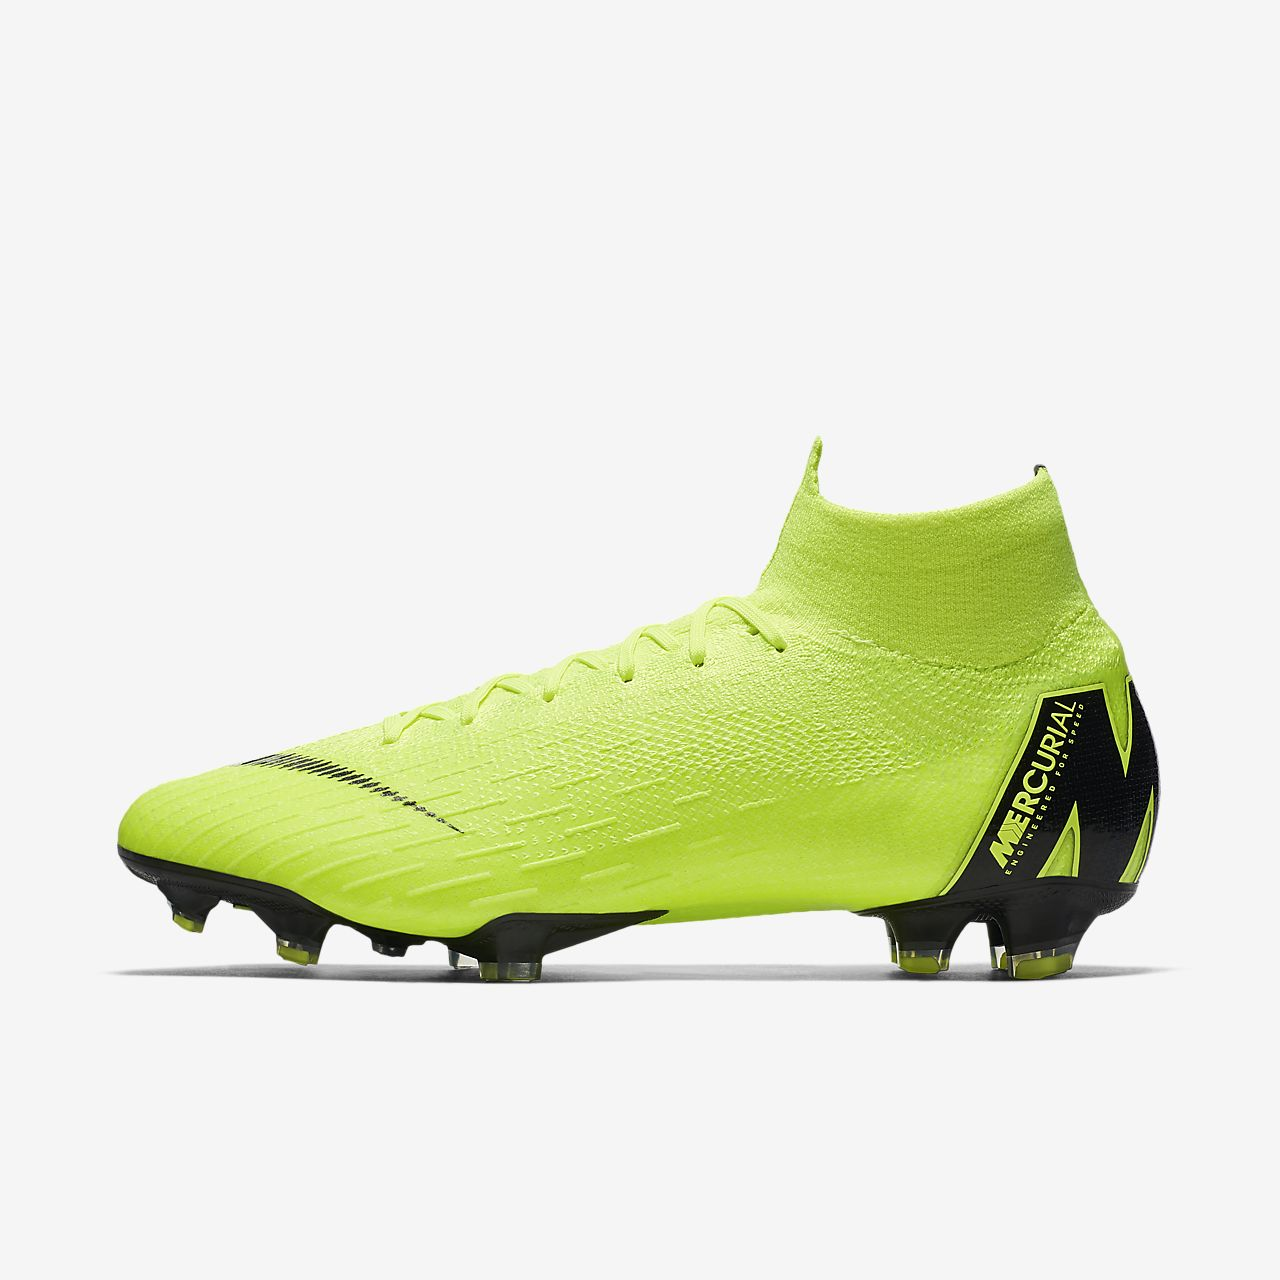 low priced c1b7a 4c8c6 ... Nike Superfly 6 Elite FG Botas de fútbol para terreno firme